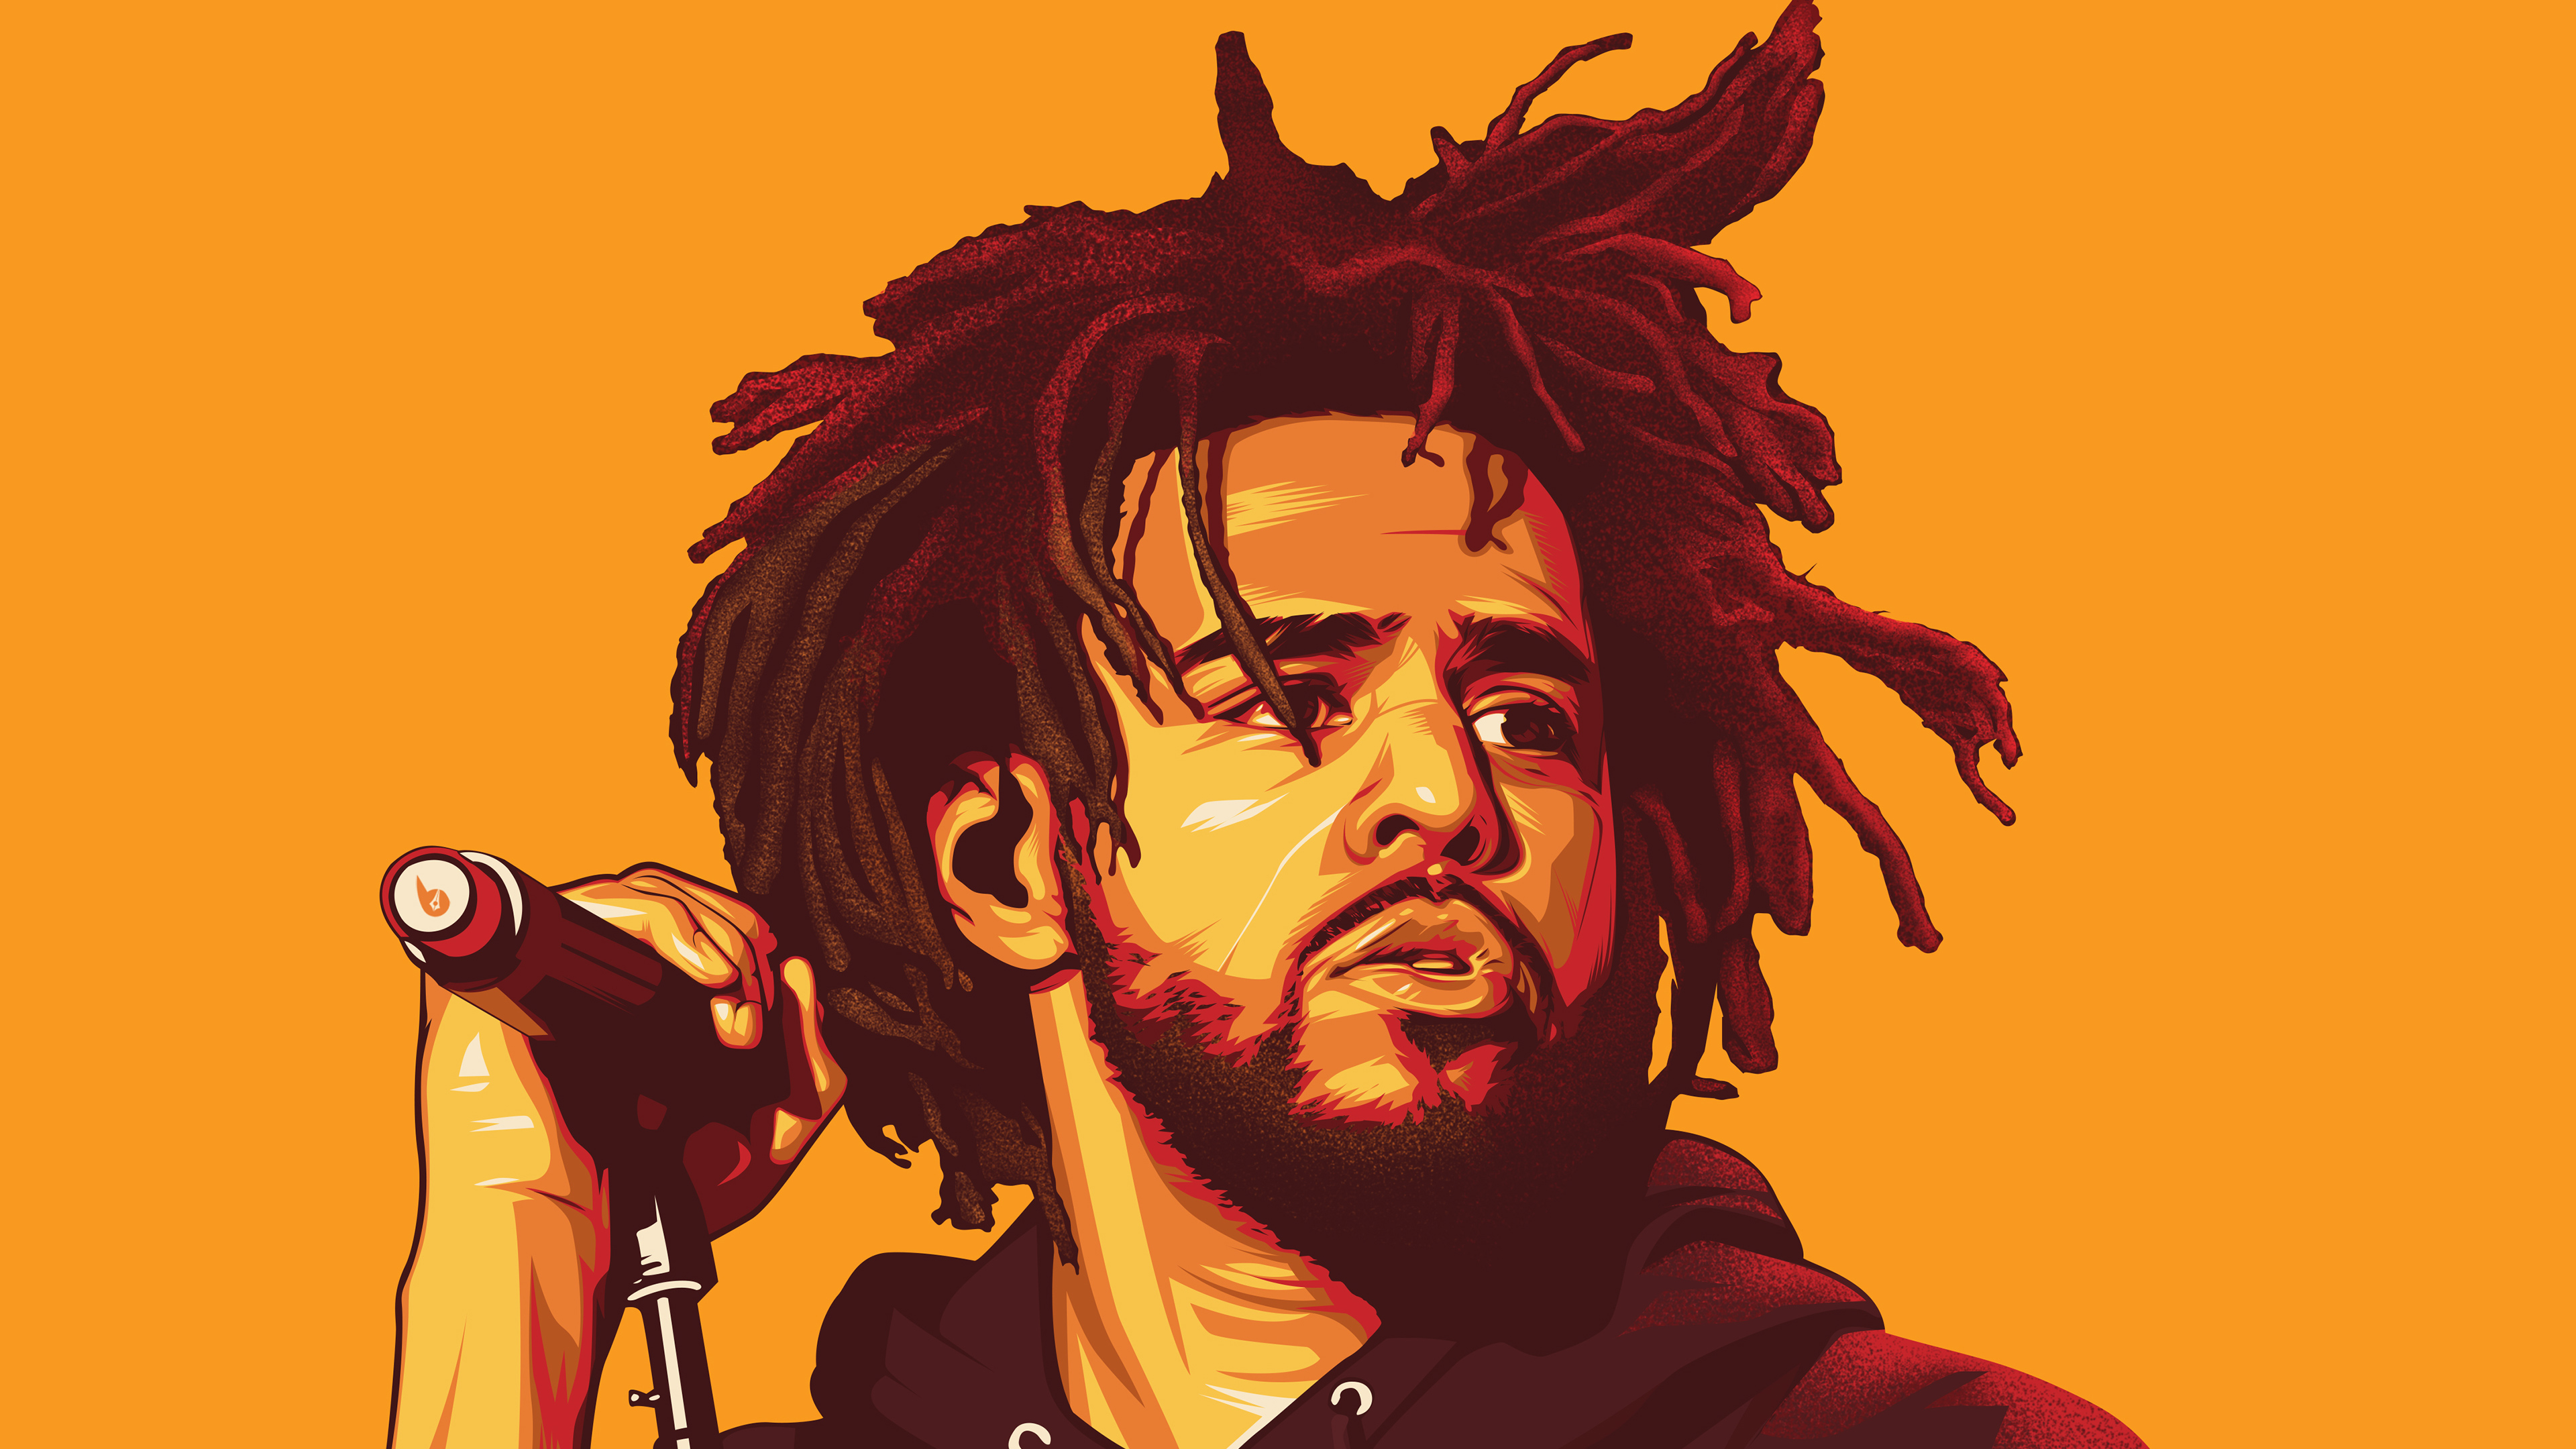 Jcole Hd Music 4k Wallpapers Images Backgrounds